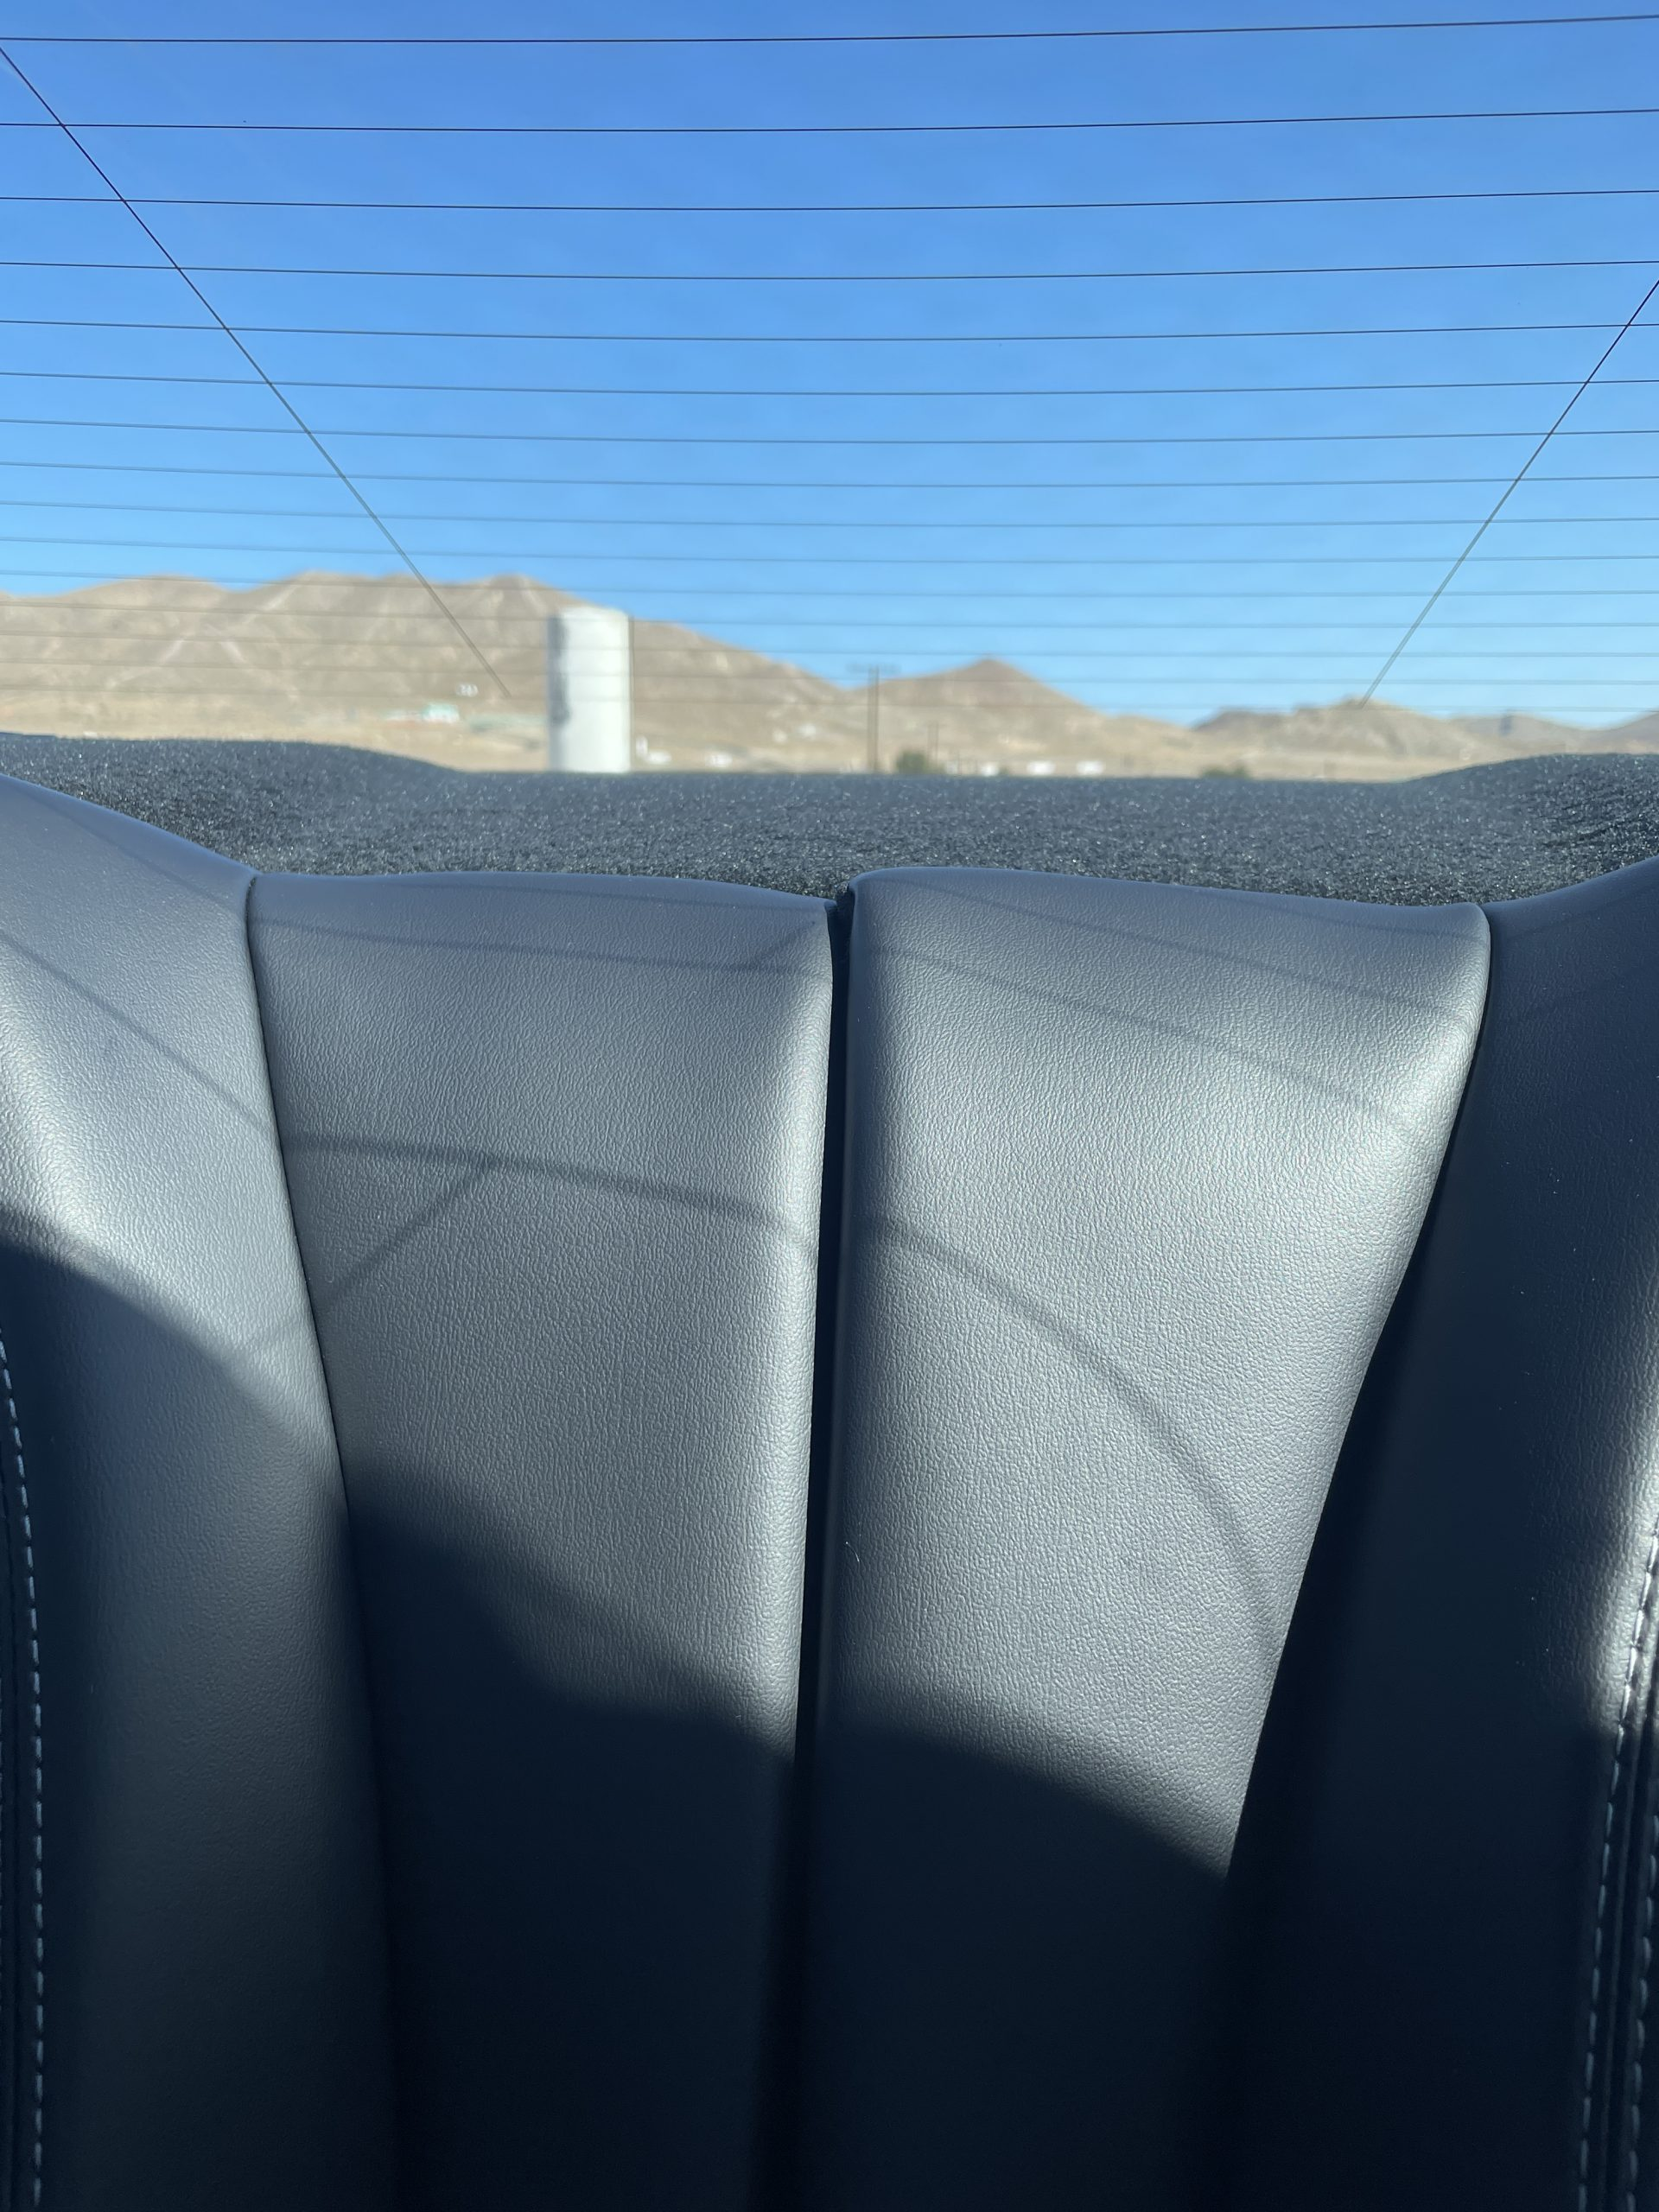 New Mustang Mach 1 rear seat seam